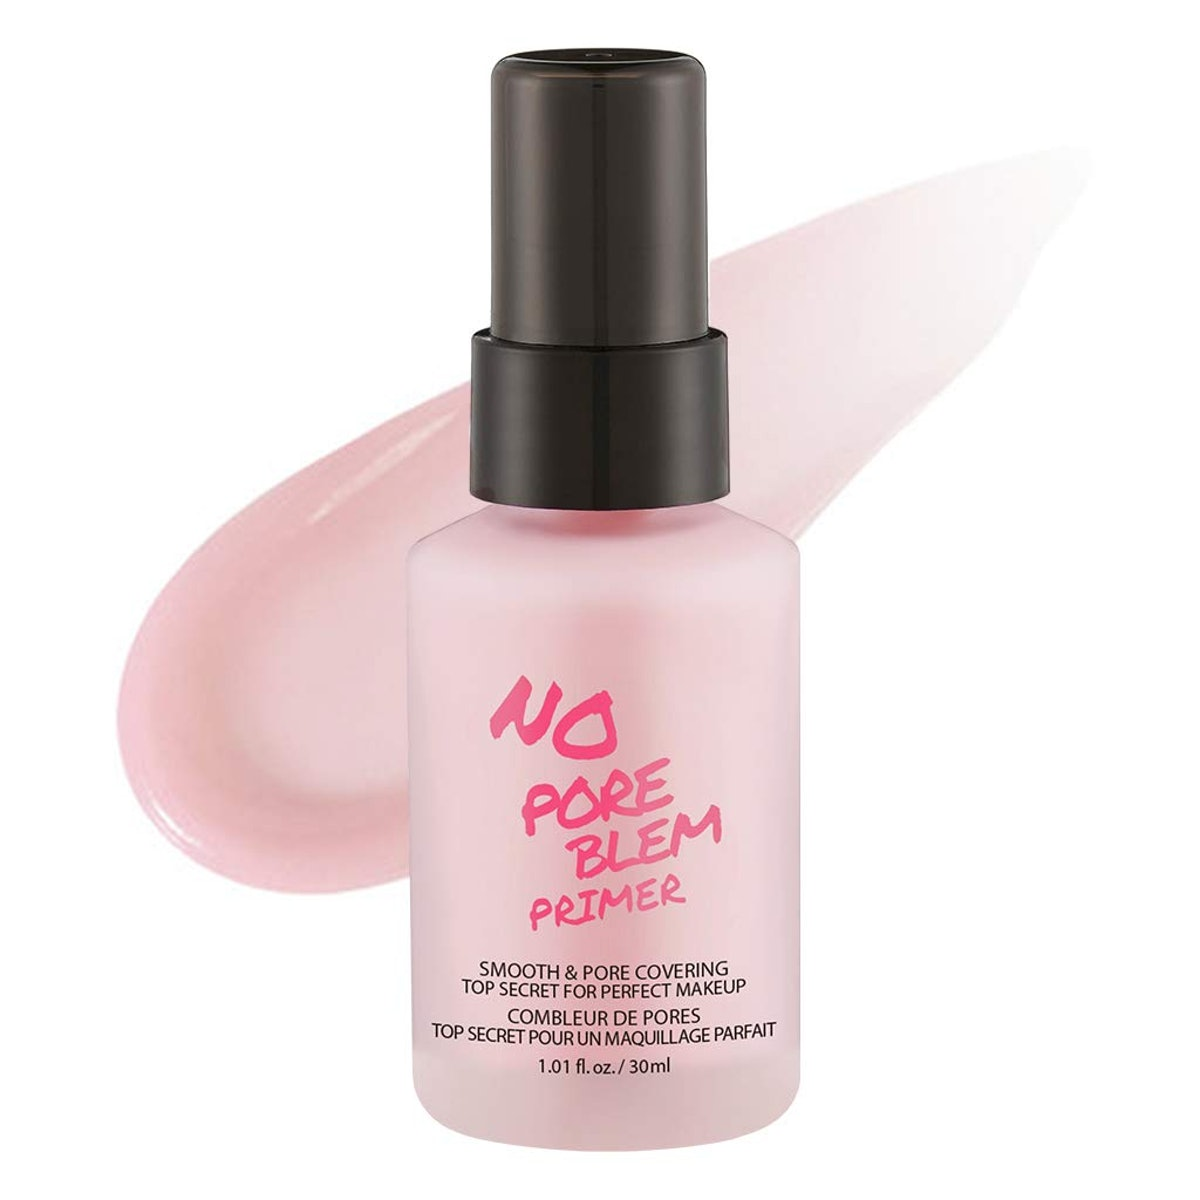 Touch In Sol No Pore Blem Primer